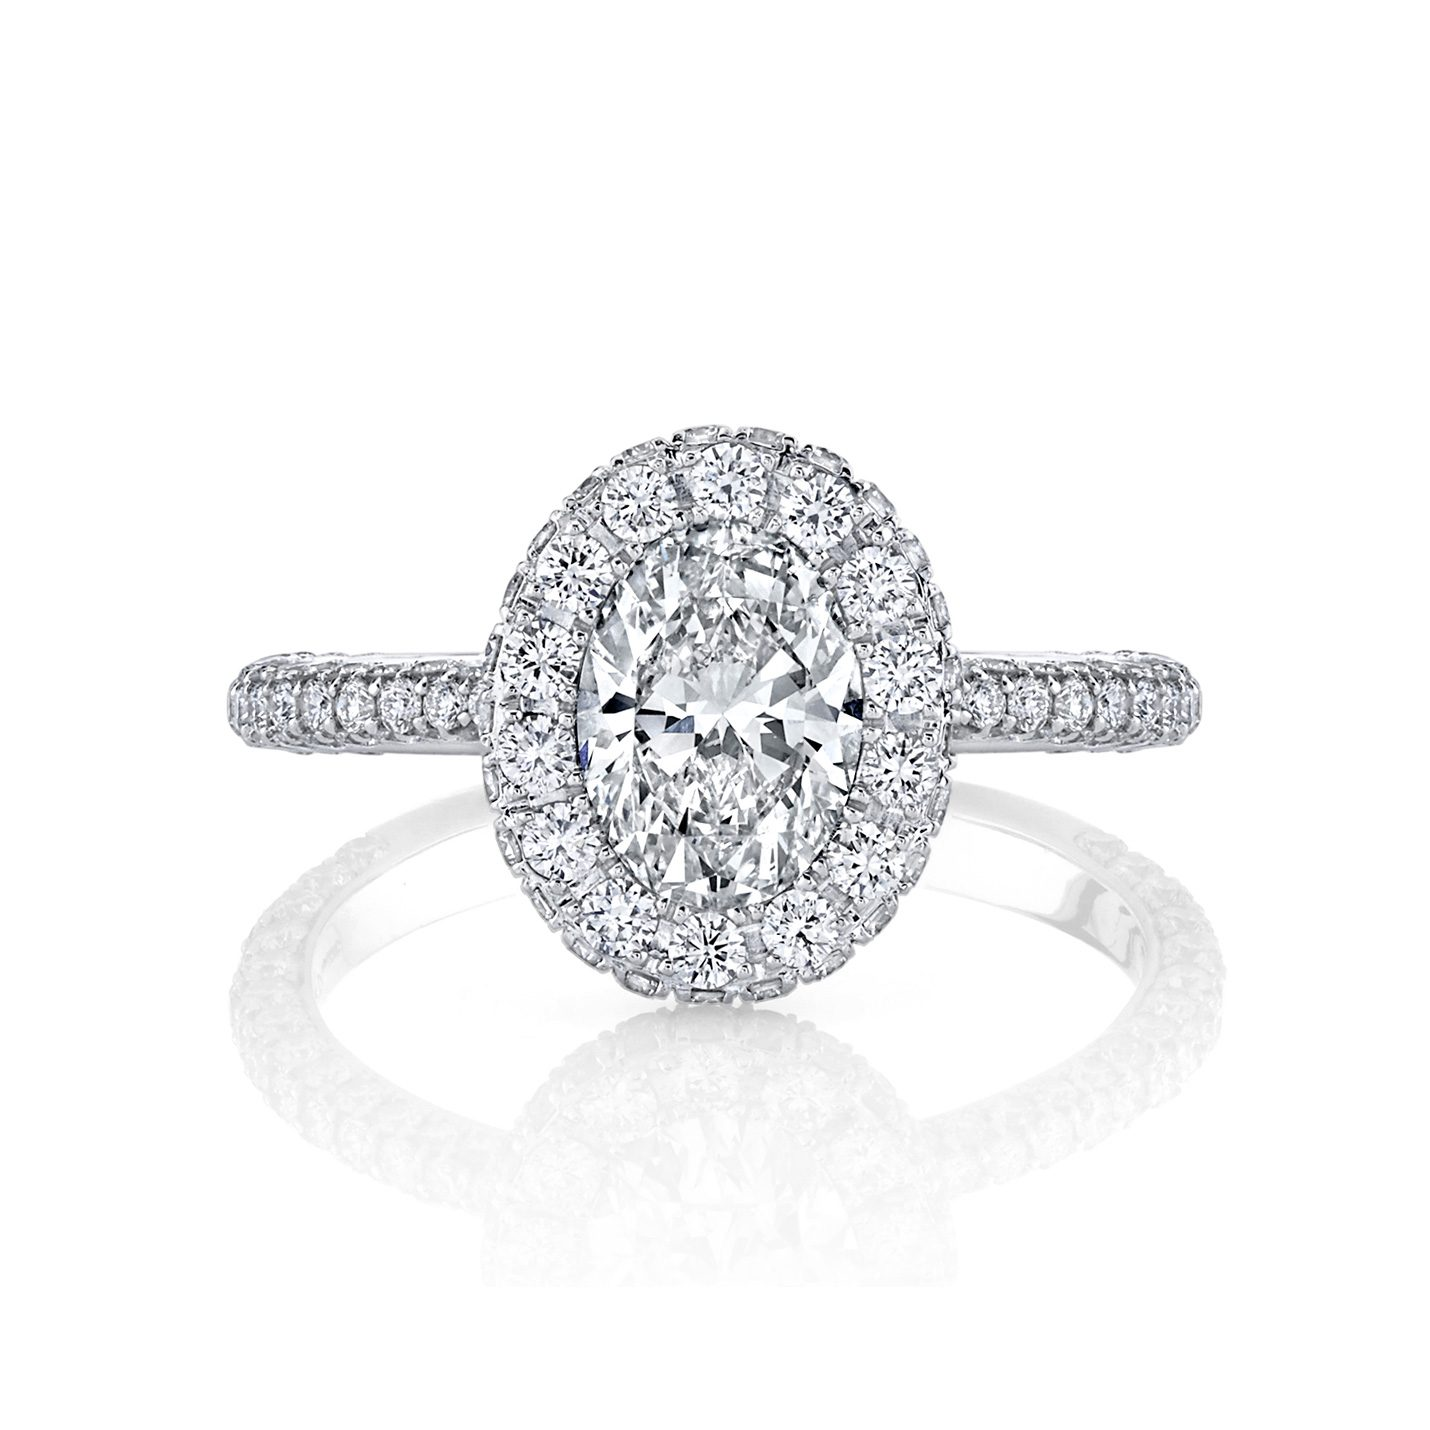 Jacqueline Oval Seamless Halo® Engagement Ring with diamond pavé in 18k White Gold Front View by Oui by Jean Dousset